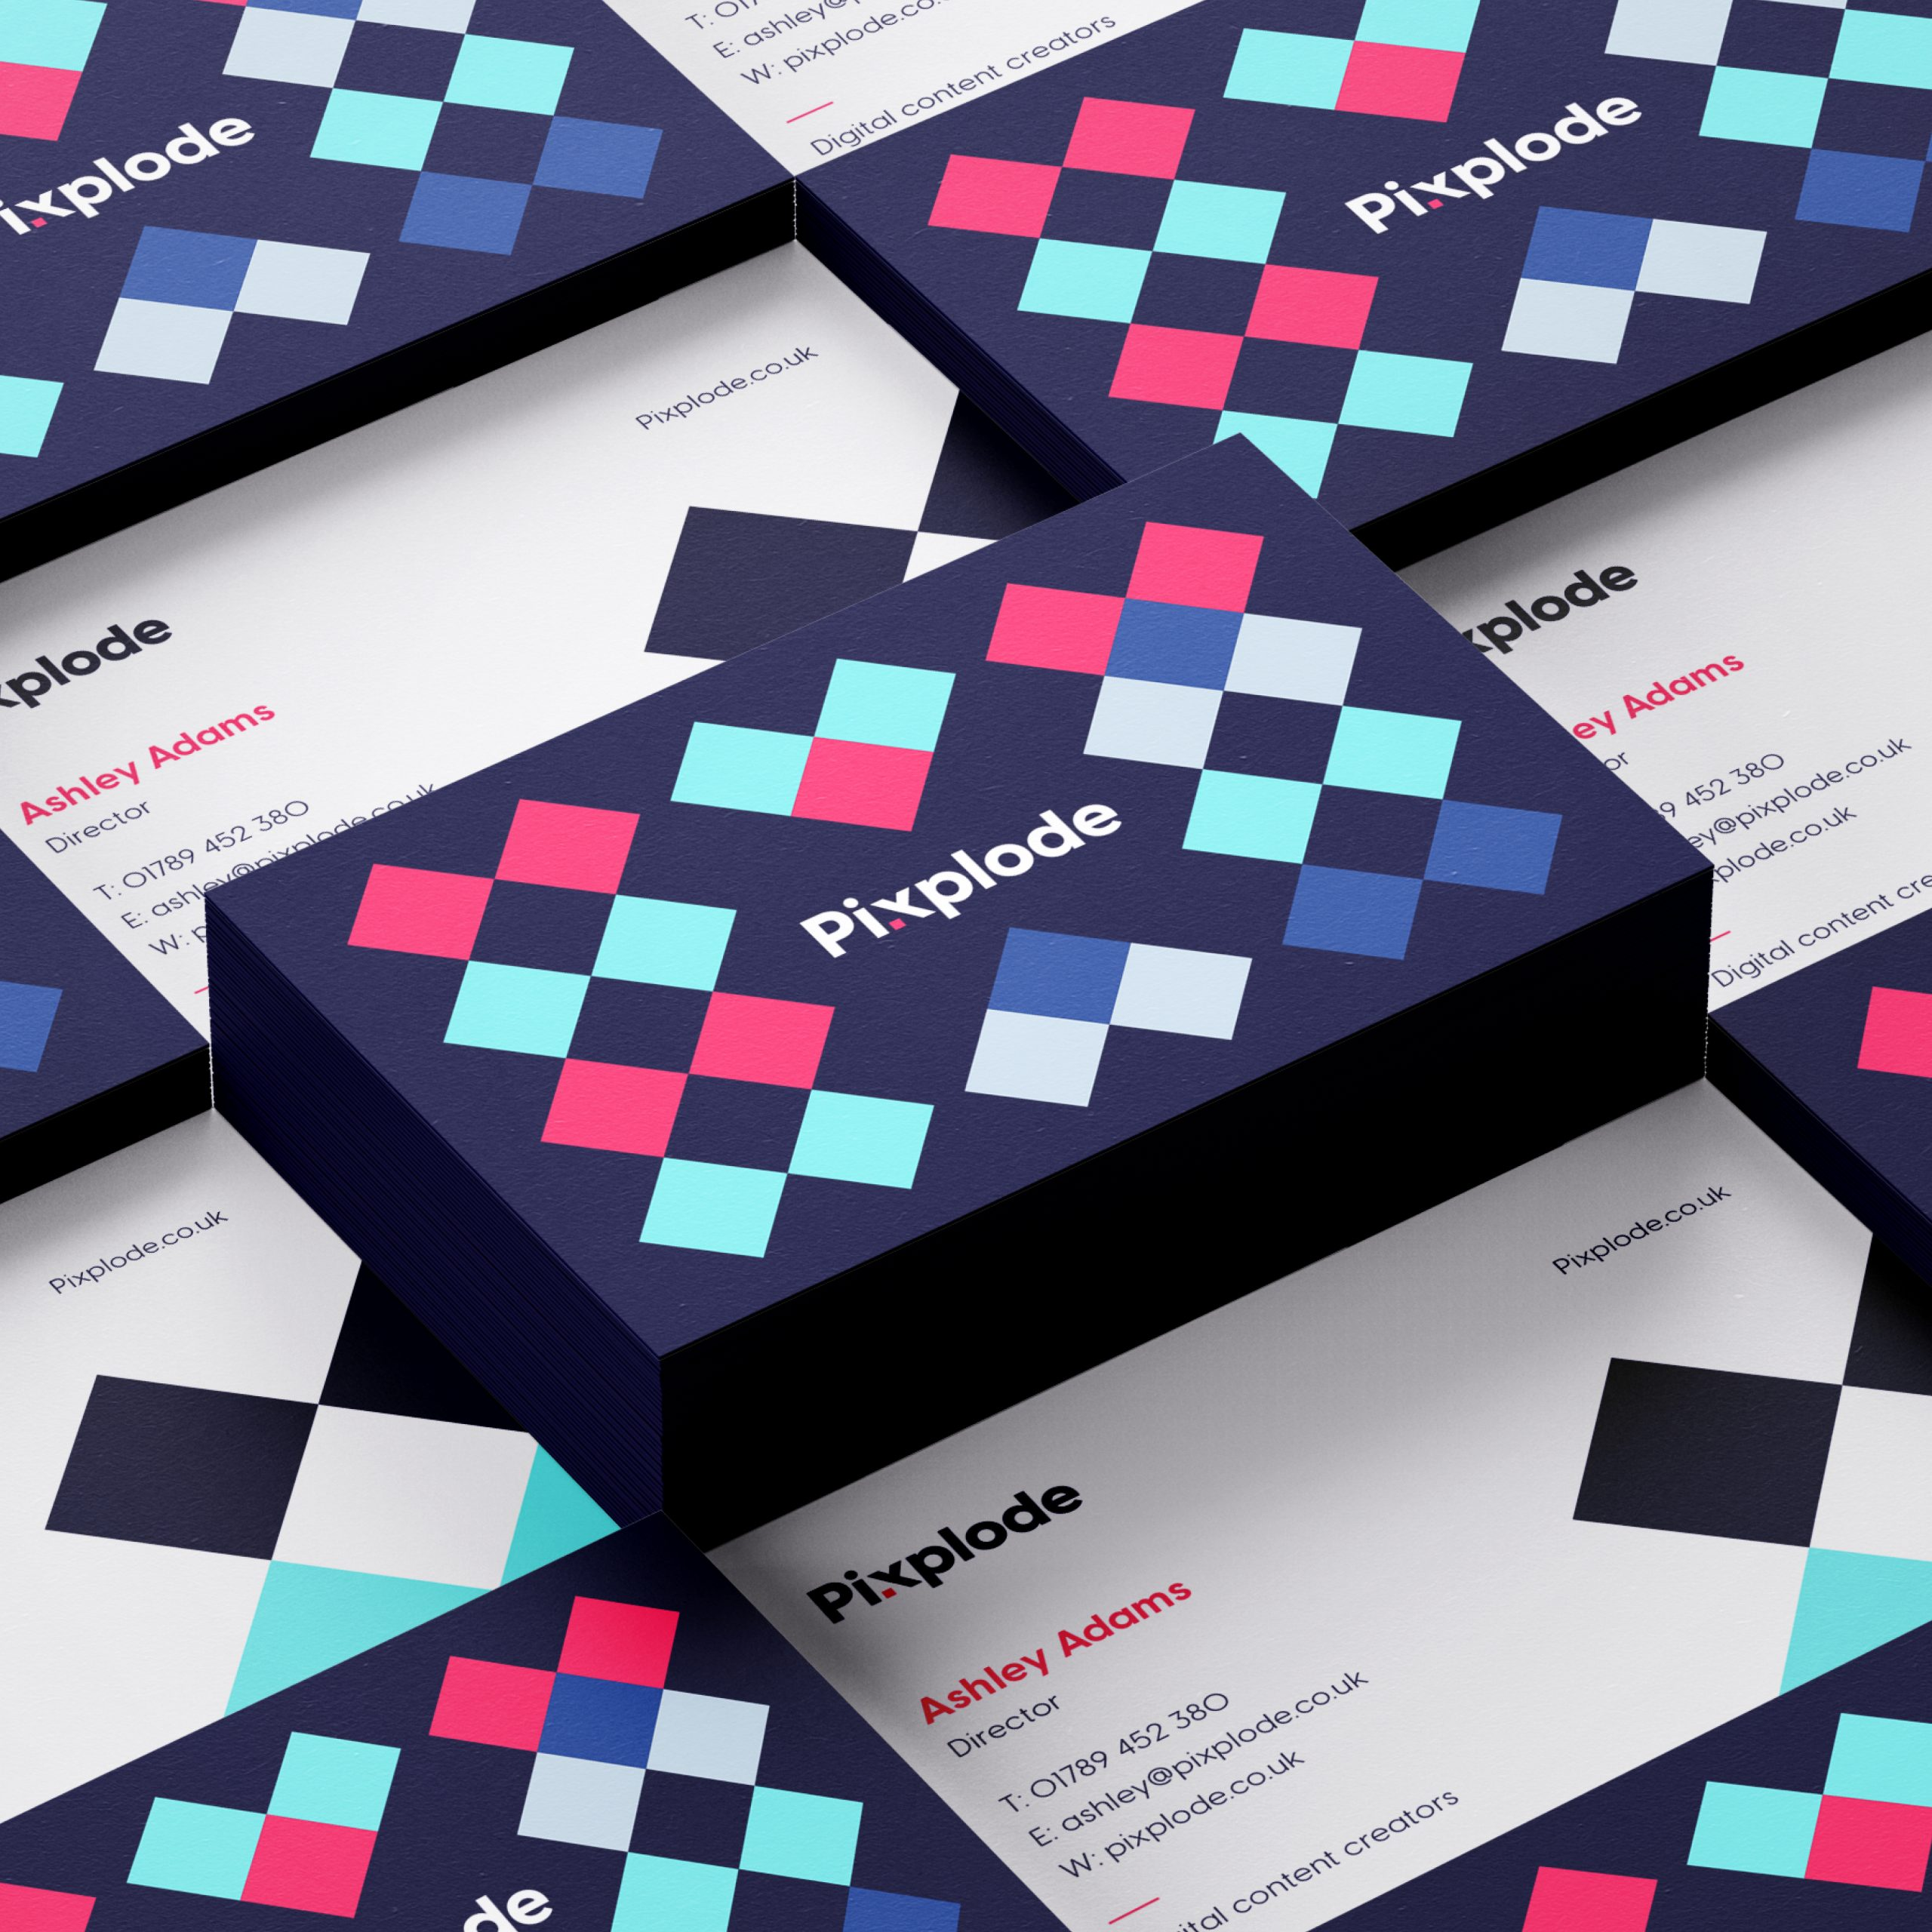 Pixplode business card